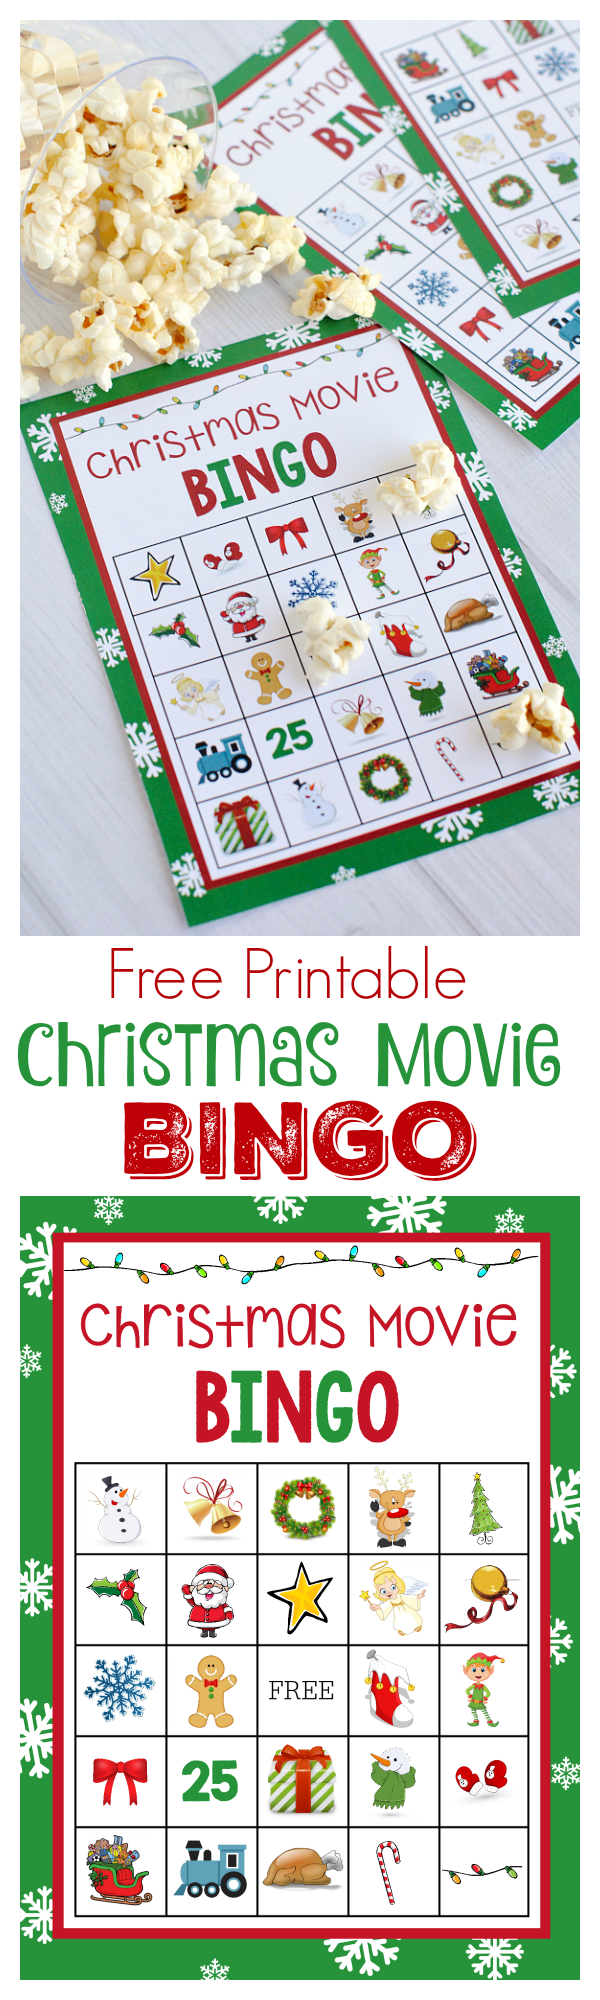 Christmas Movie Night Bingo Game-Print and play with the family while you watch the show!